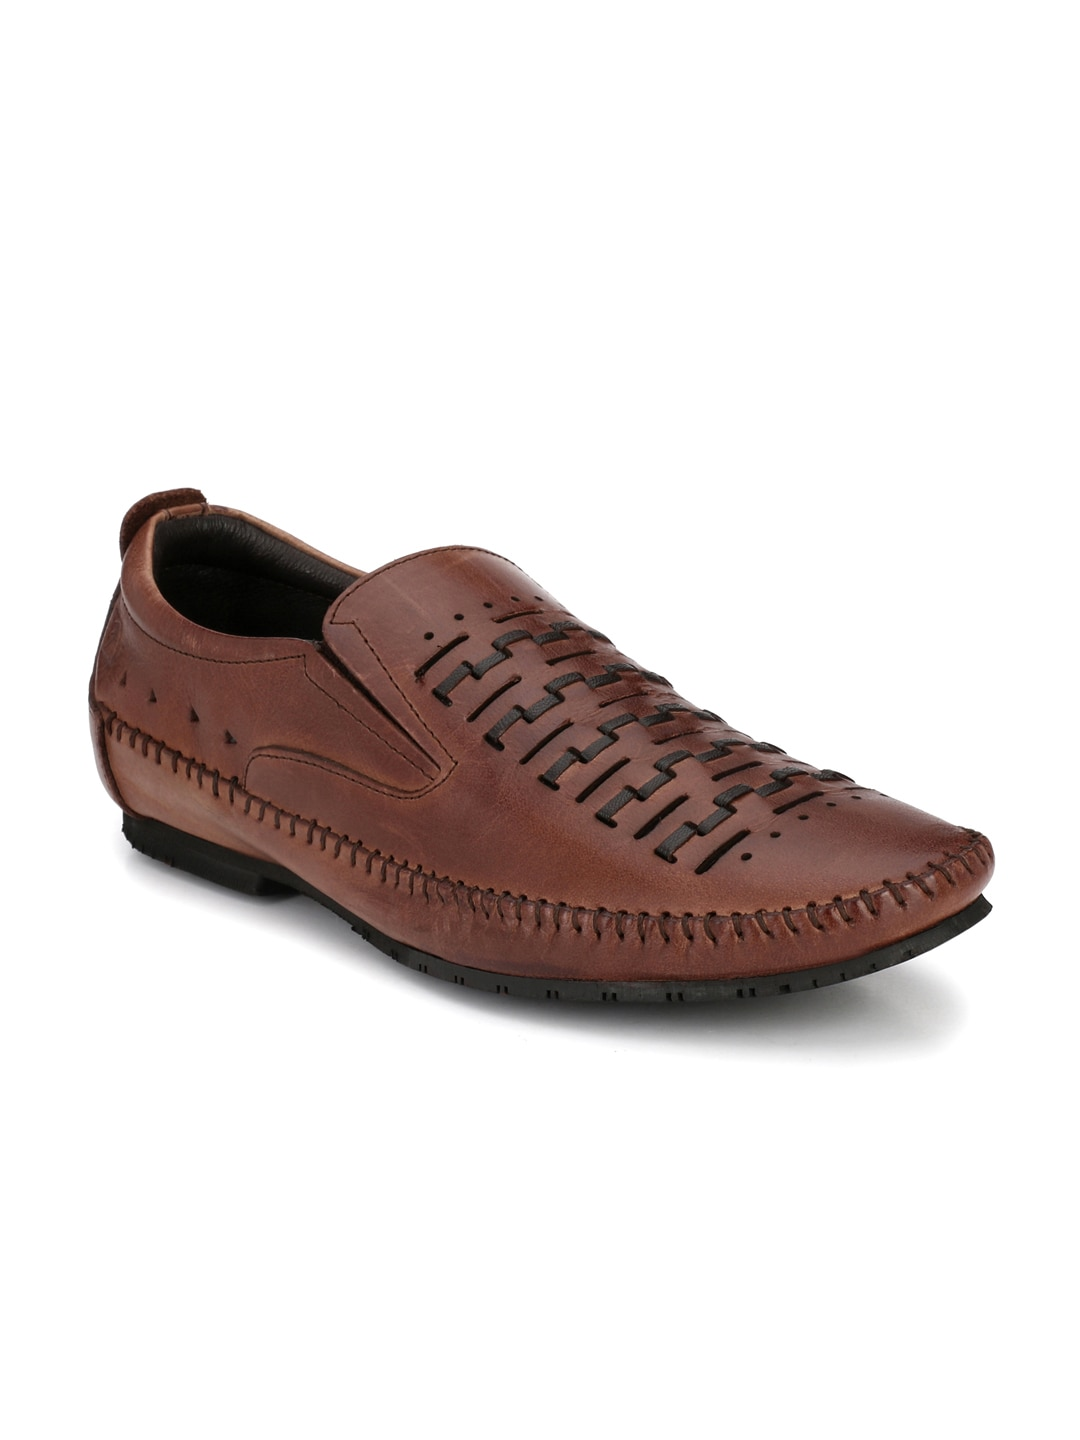 2f8851aa6cca Leather Cut Shoes - Buy Leather Cut Shoes online in India